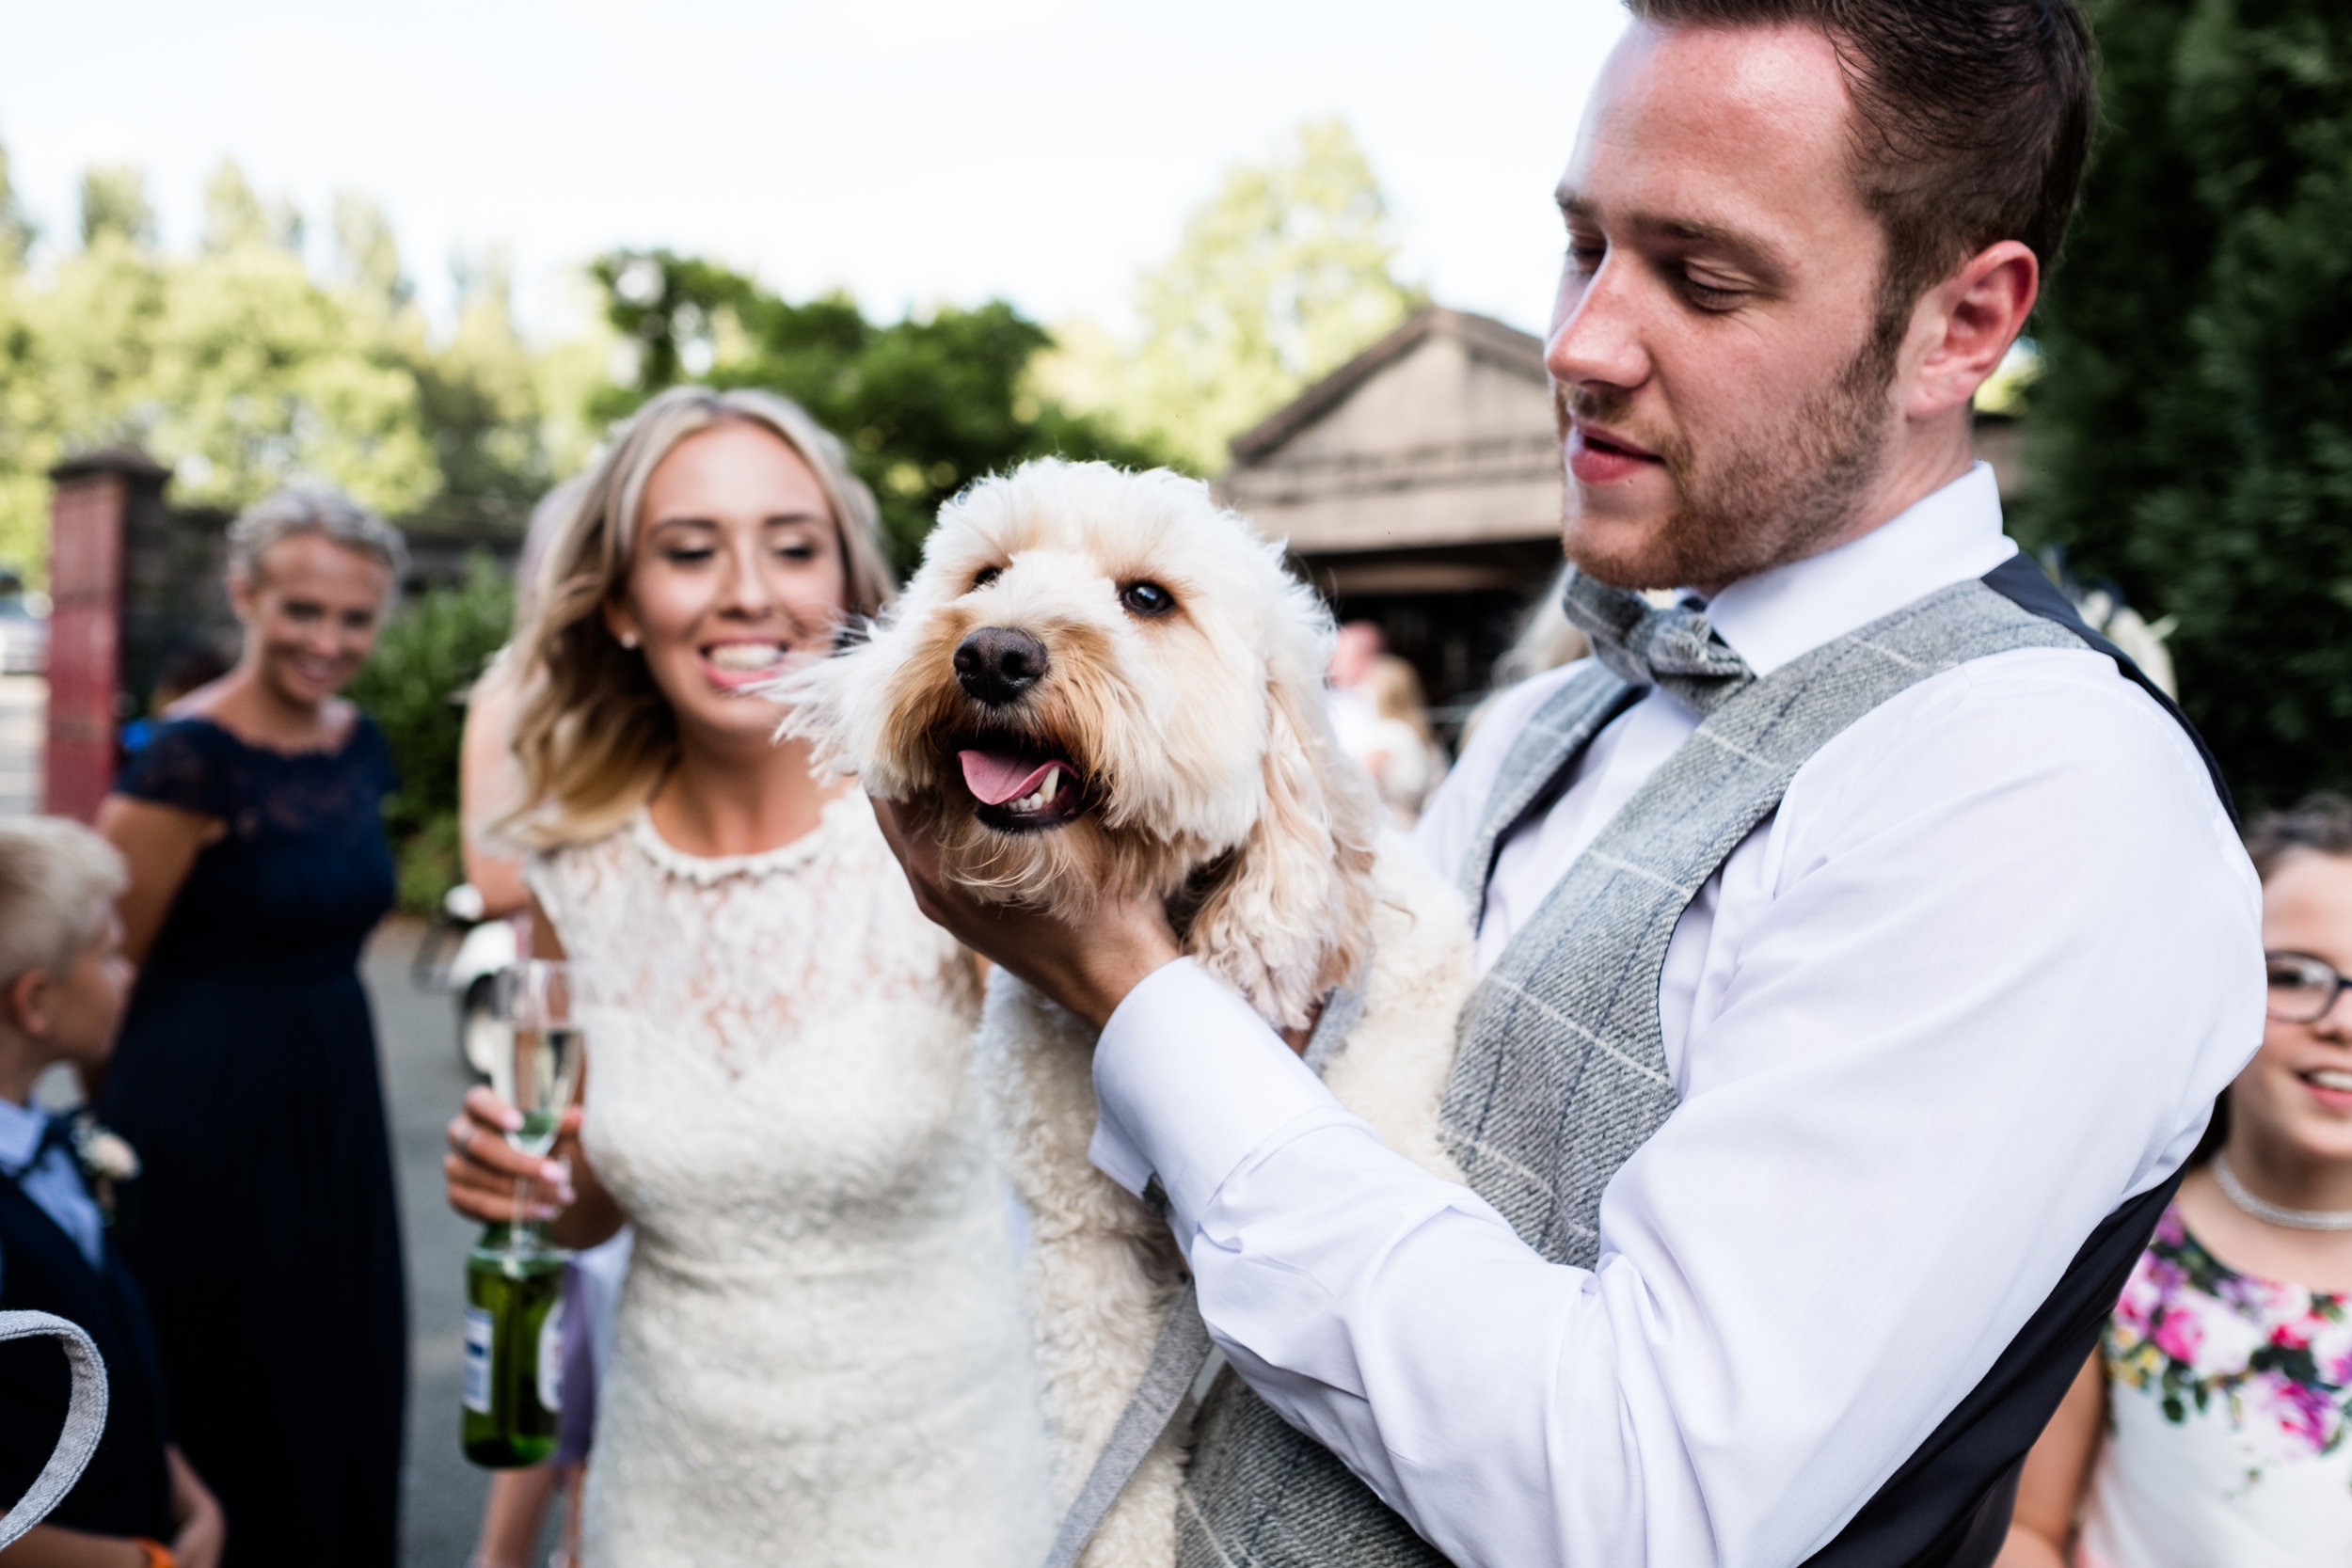 Summer Documentary Wedding Photography at Consall Hall Gardens Outdoor Ceremony Cockapoo dog - Jenny Harper-55.jpg